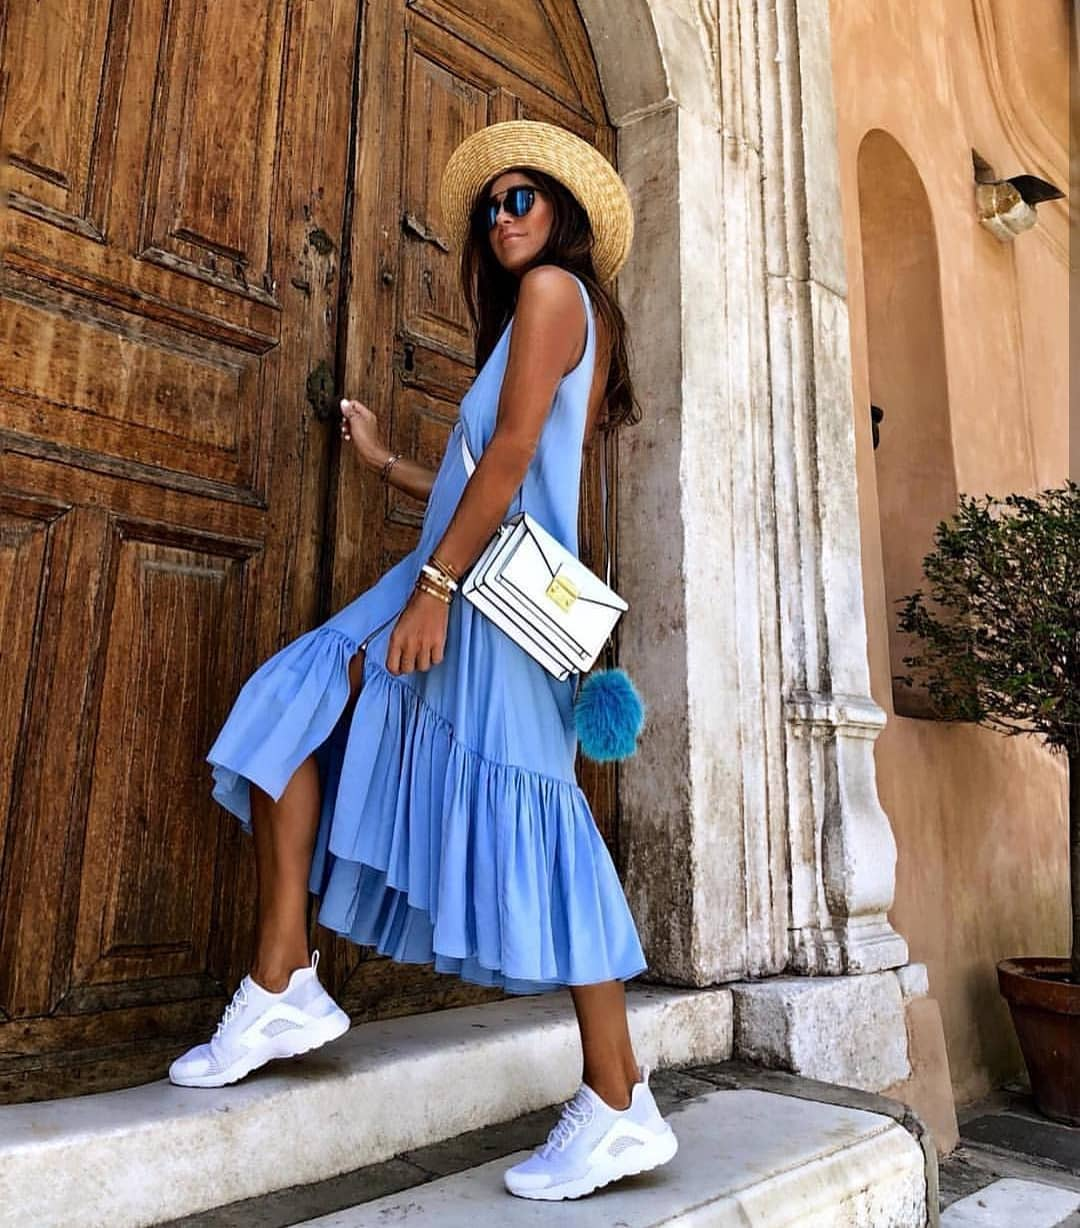 How To Wear Bright Blue Dress With White Sneakers This Summer 2019